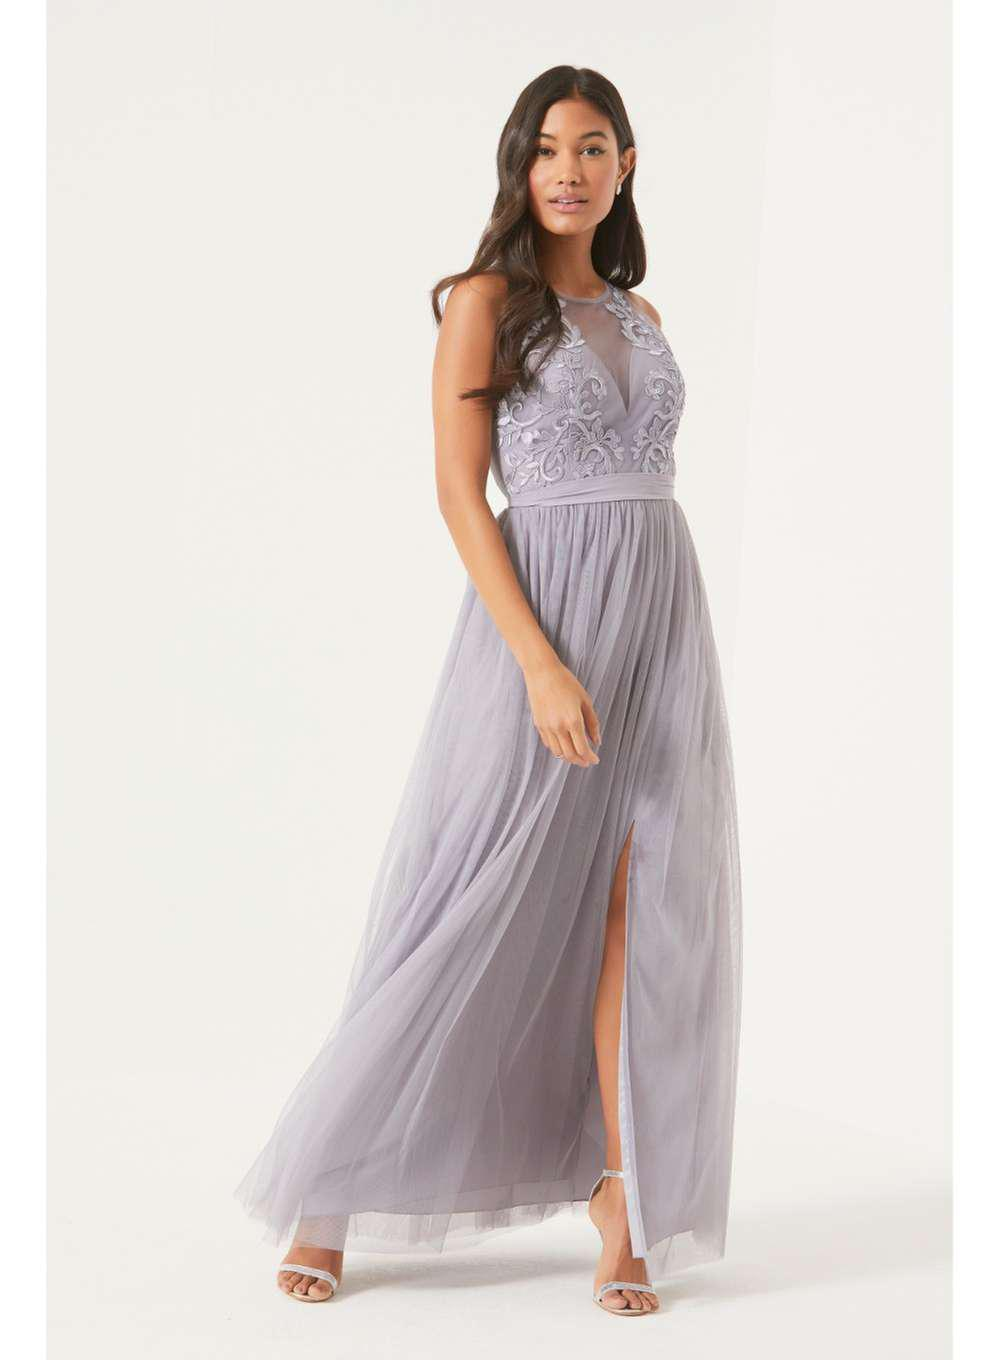 ae8b14e4aabe Lyst - Dorothy Perkins Little Mistress Purple Lace Maxi Dress in Purple